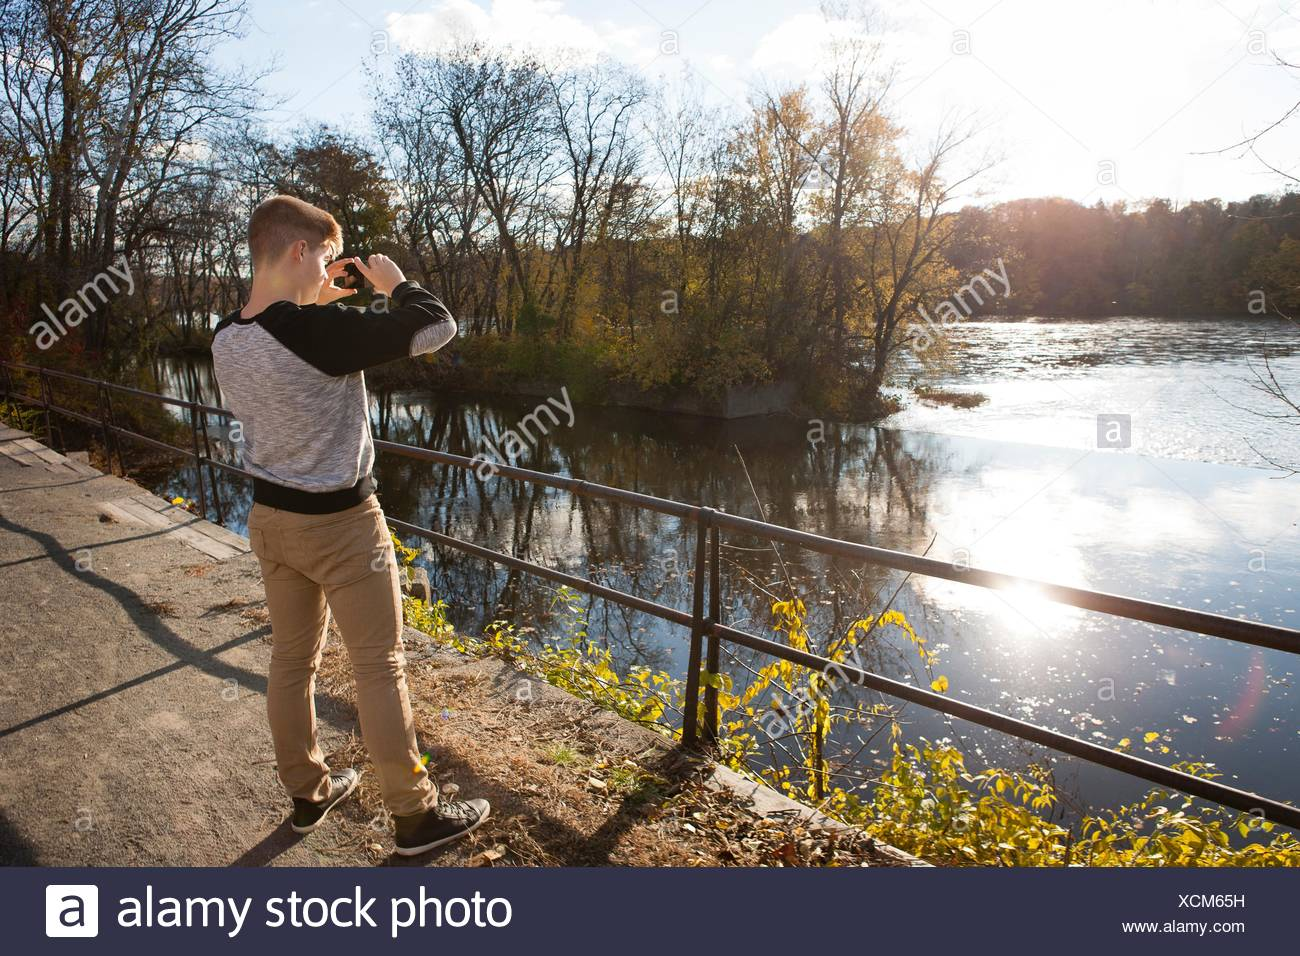 Teenage boy photographing sunlit river in autumn park - Stock Image